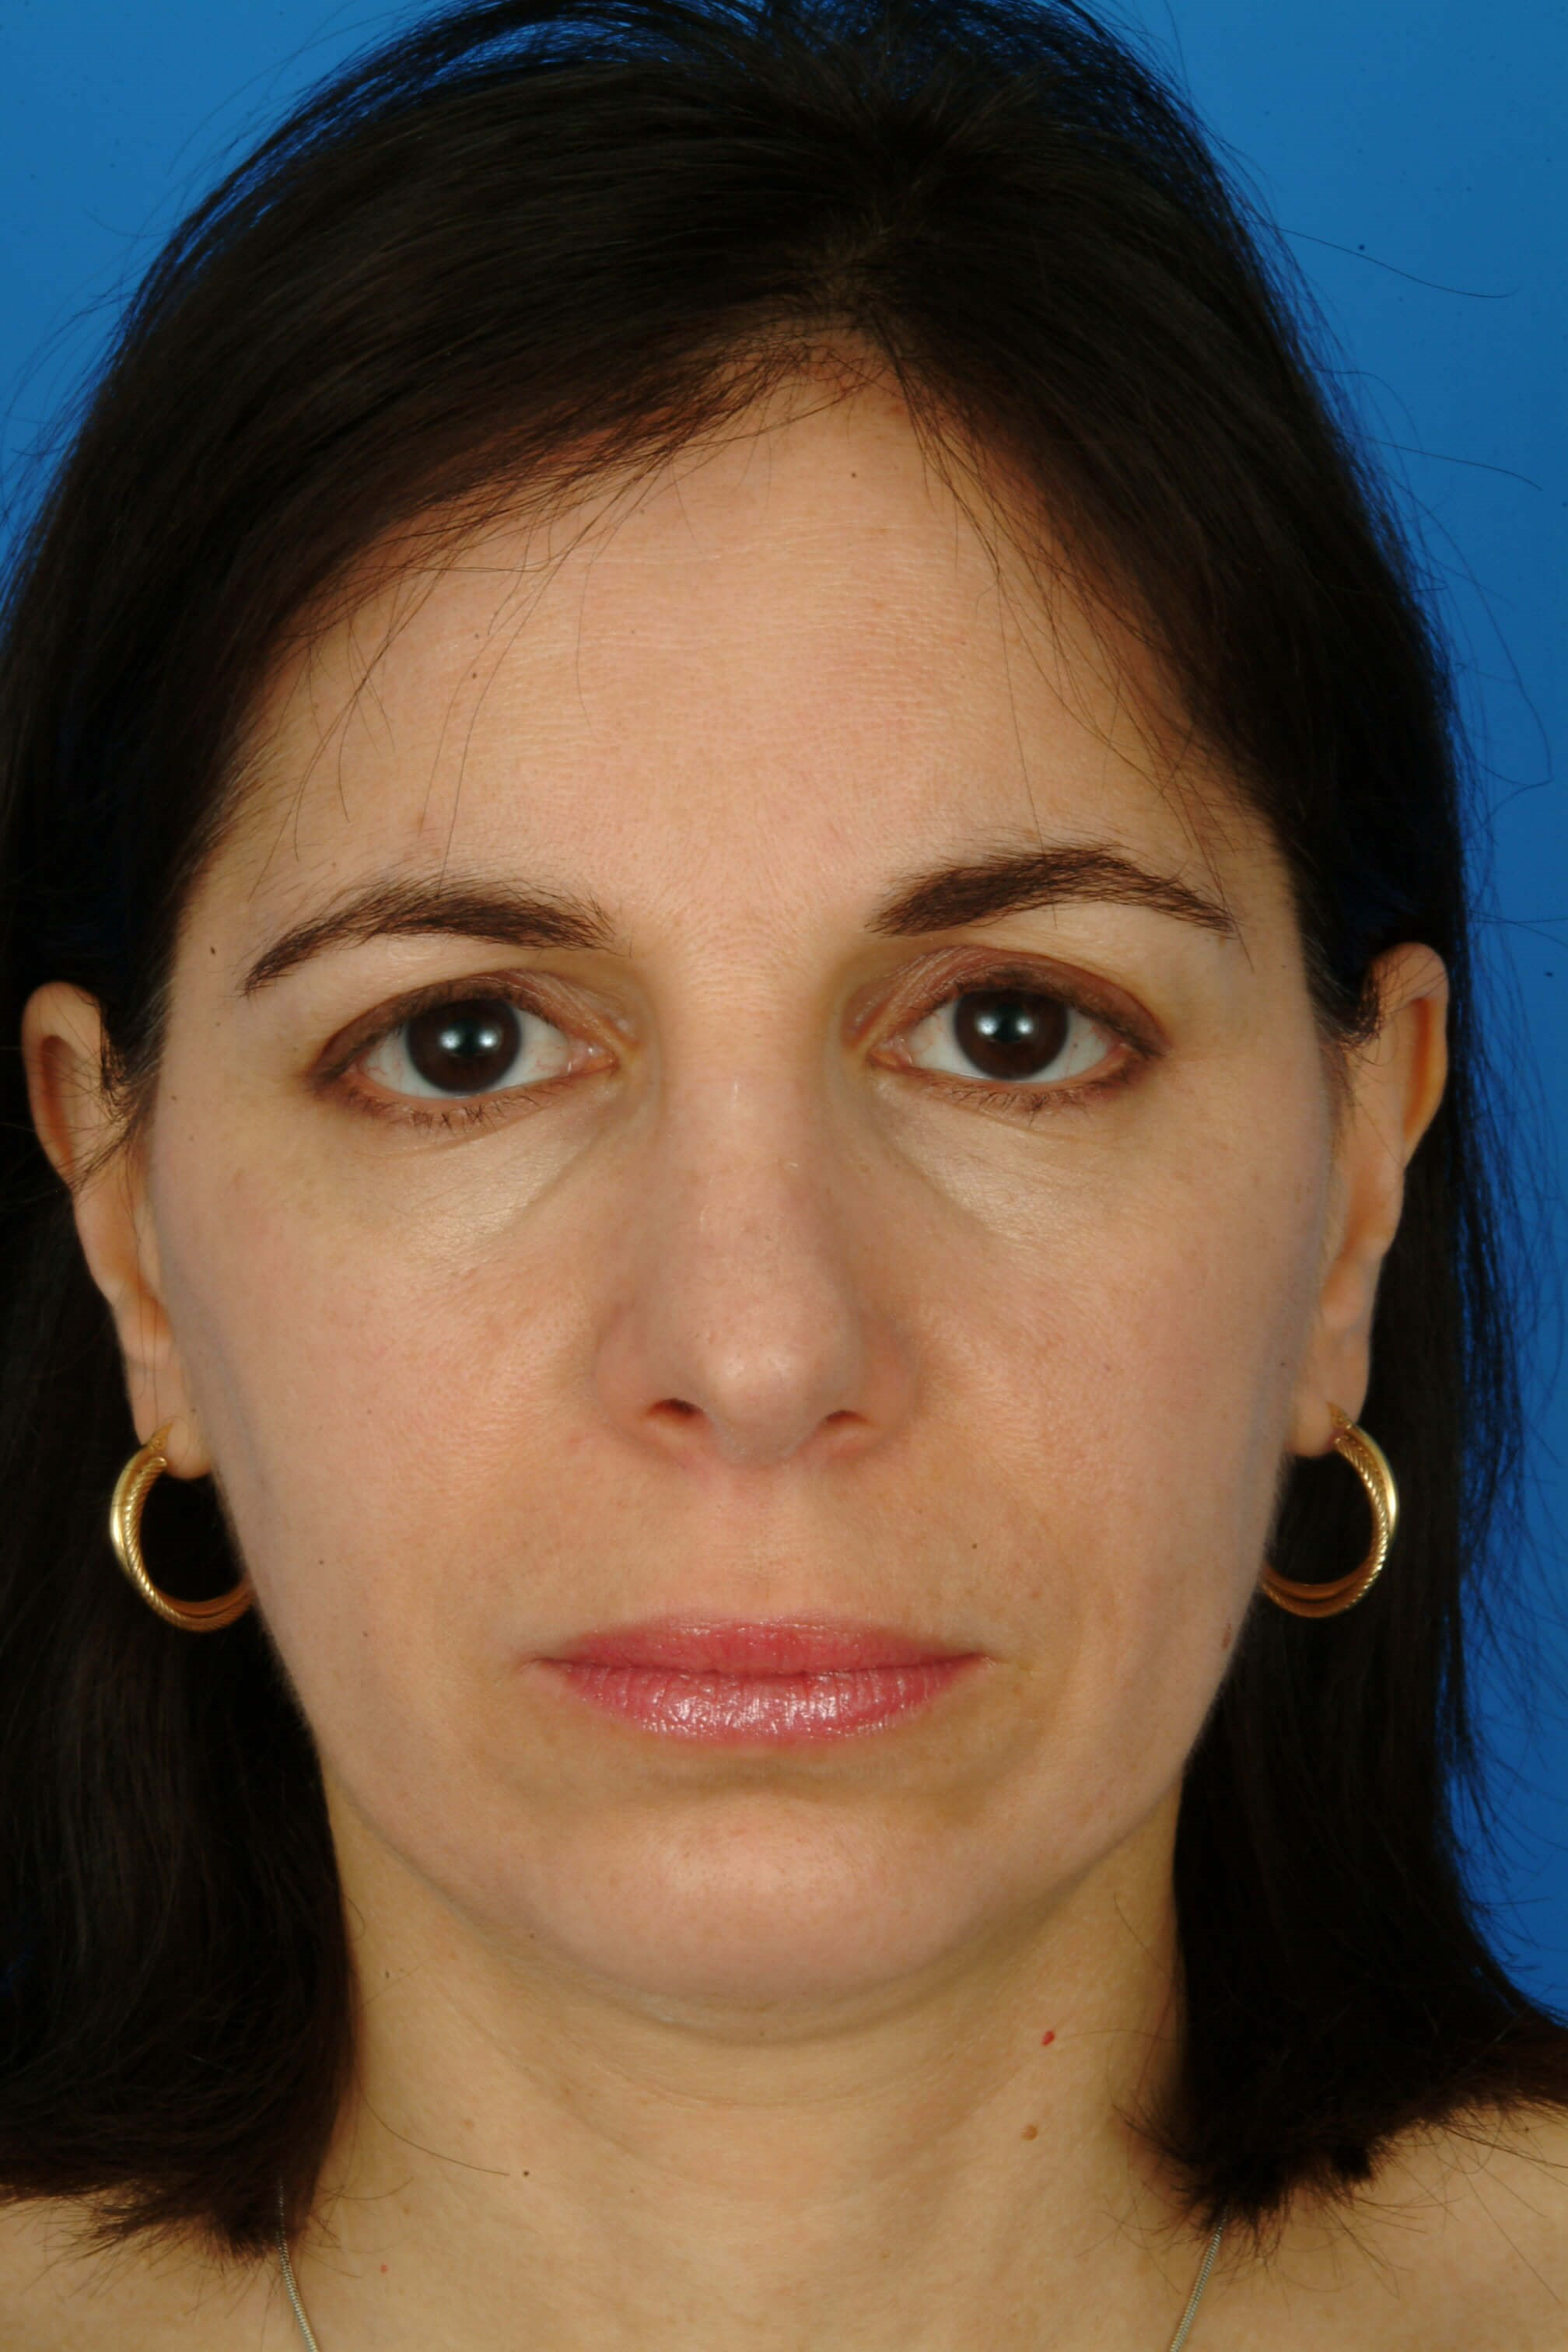 Front View 3 Months After Rhinoplasty